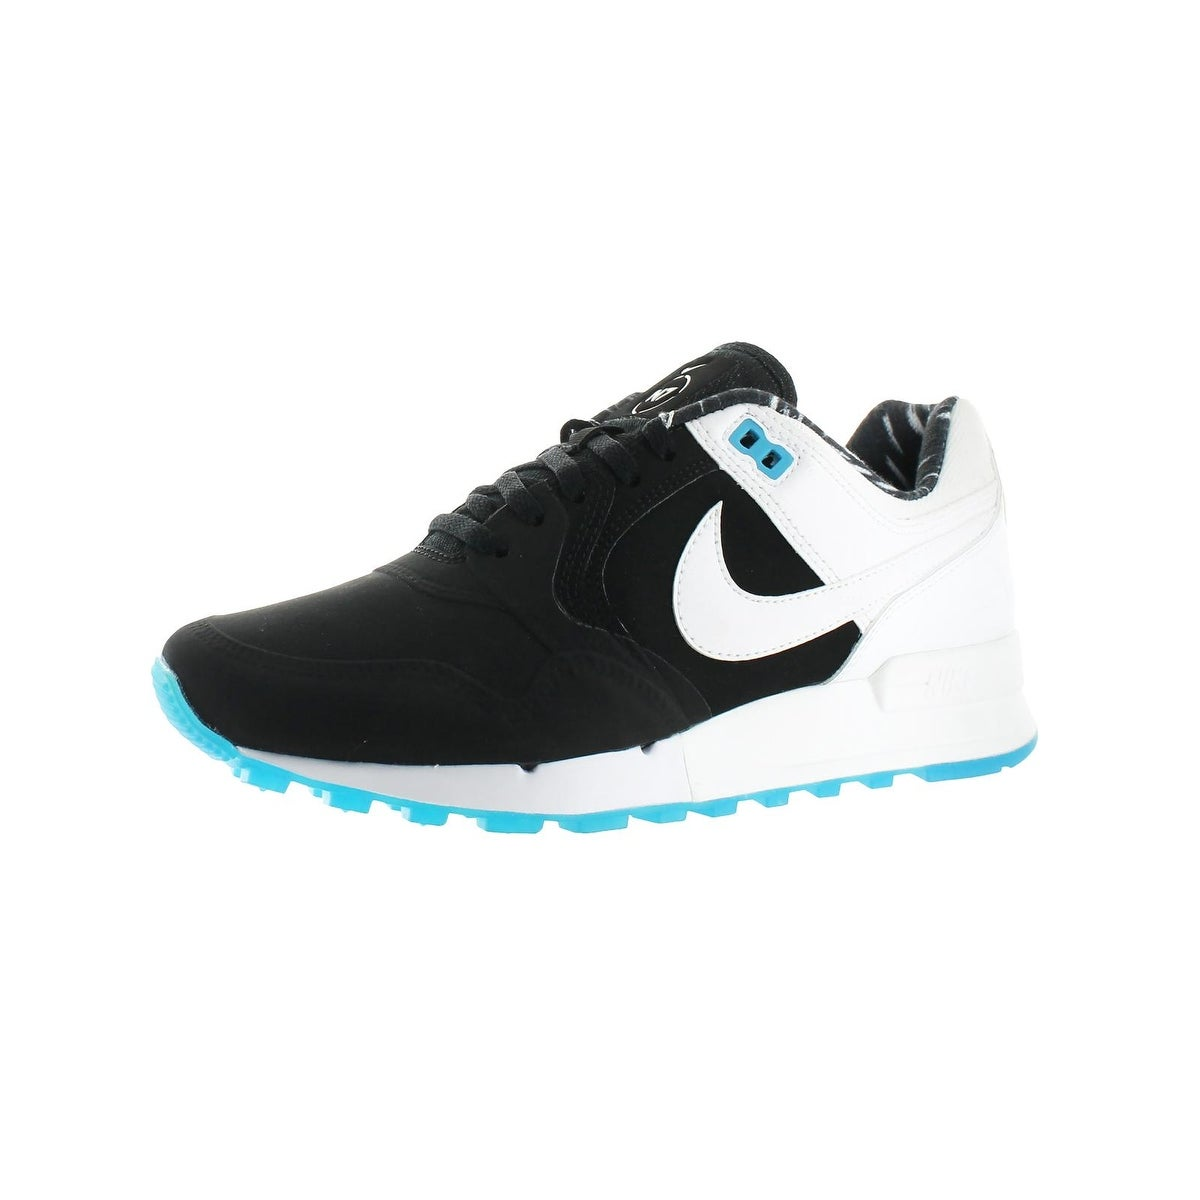 Nike Mens Air Pegasus '89 PRM SE N7 Running Shoes Colorblock Cushioned